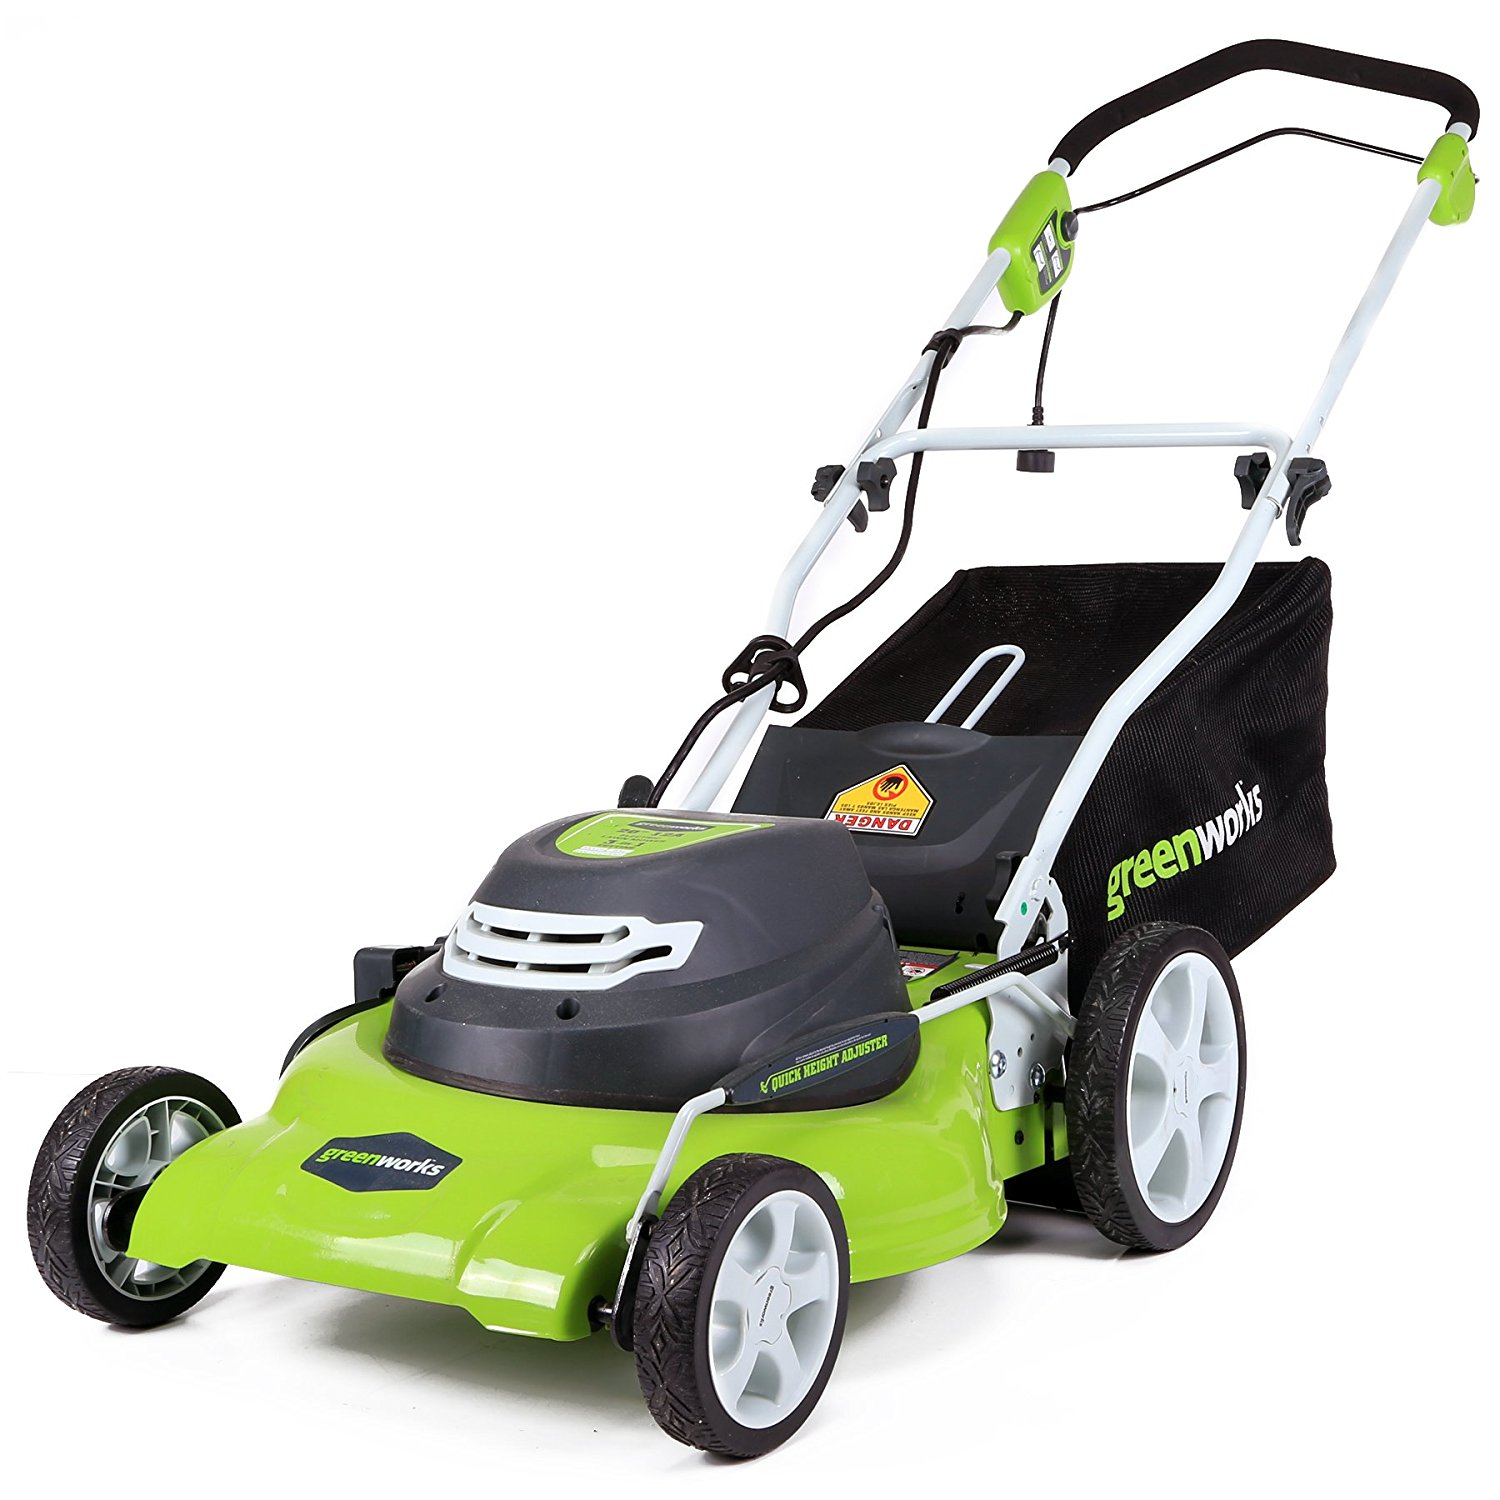 (25022) 20-Inch Corded Electric Lawn Mower from Greenworks